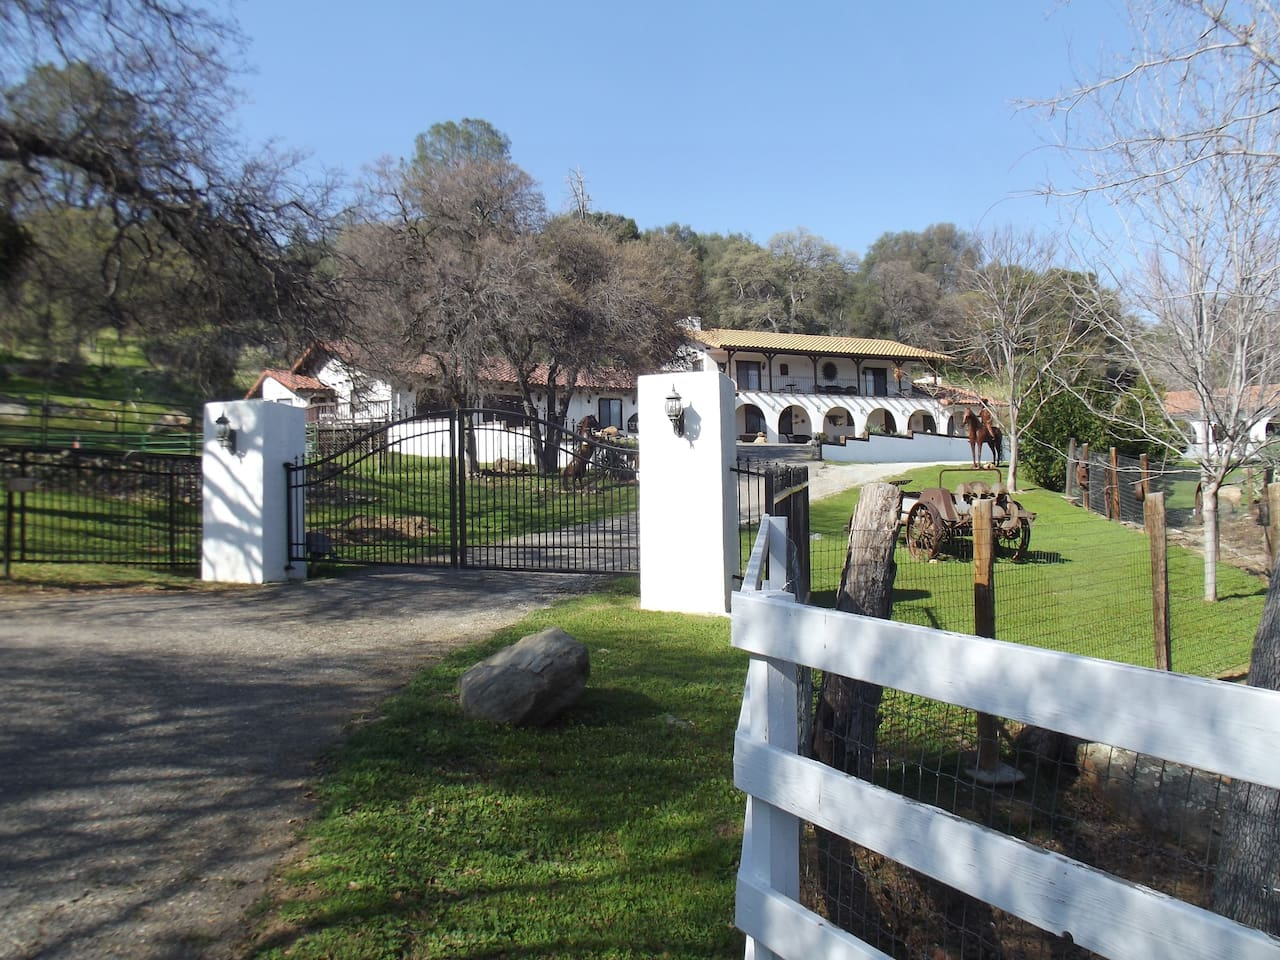 Stay at our beautiful private ranch on 5 acres in a king size bed